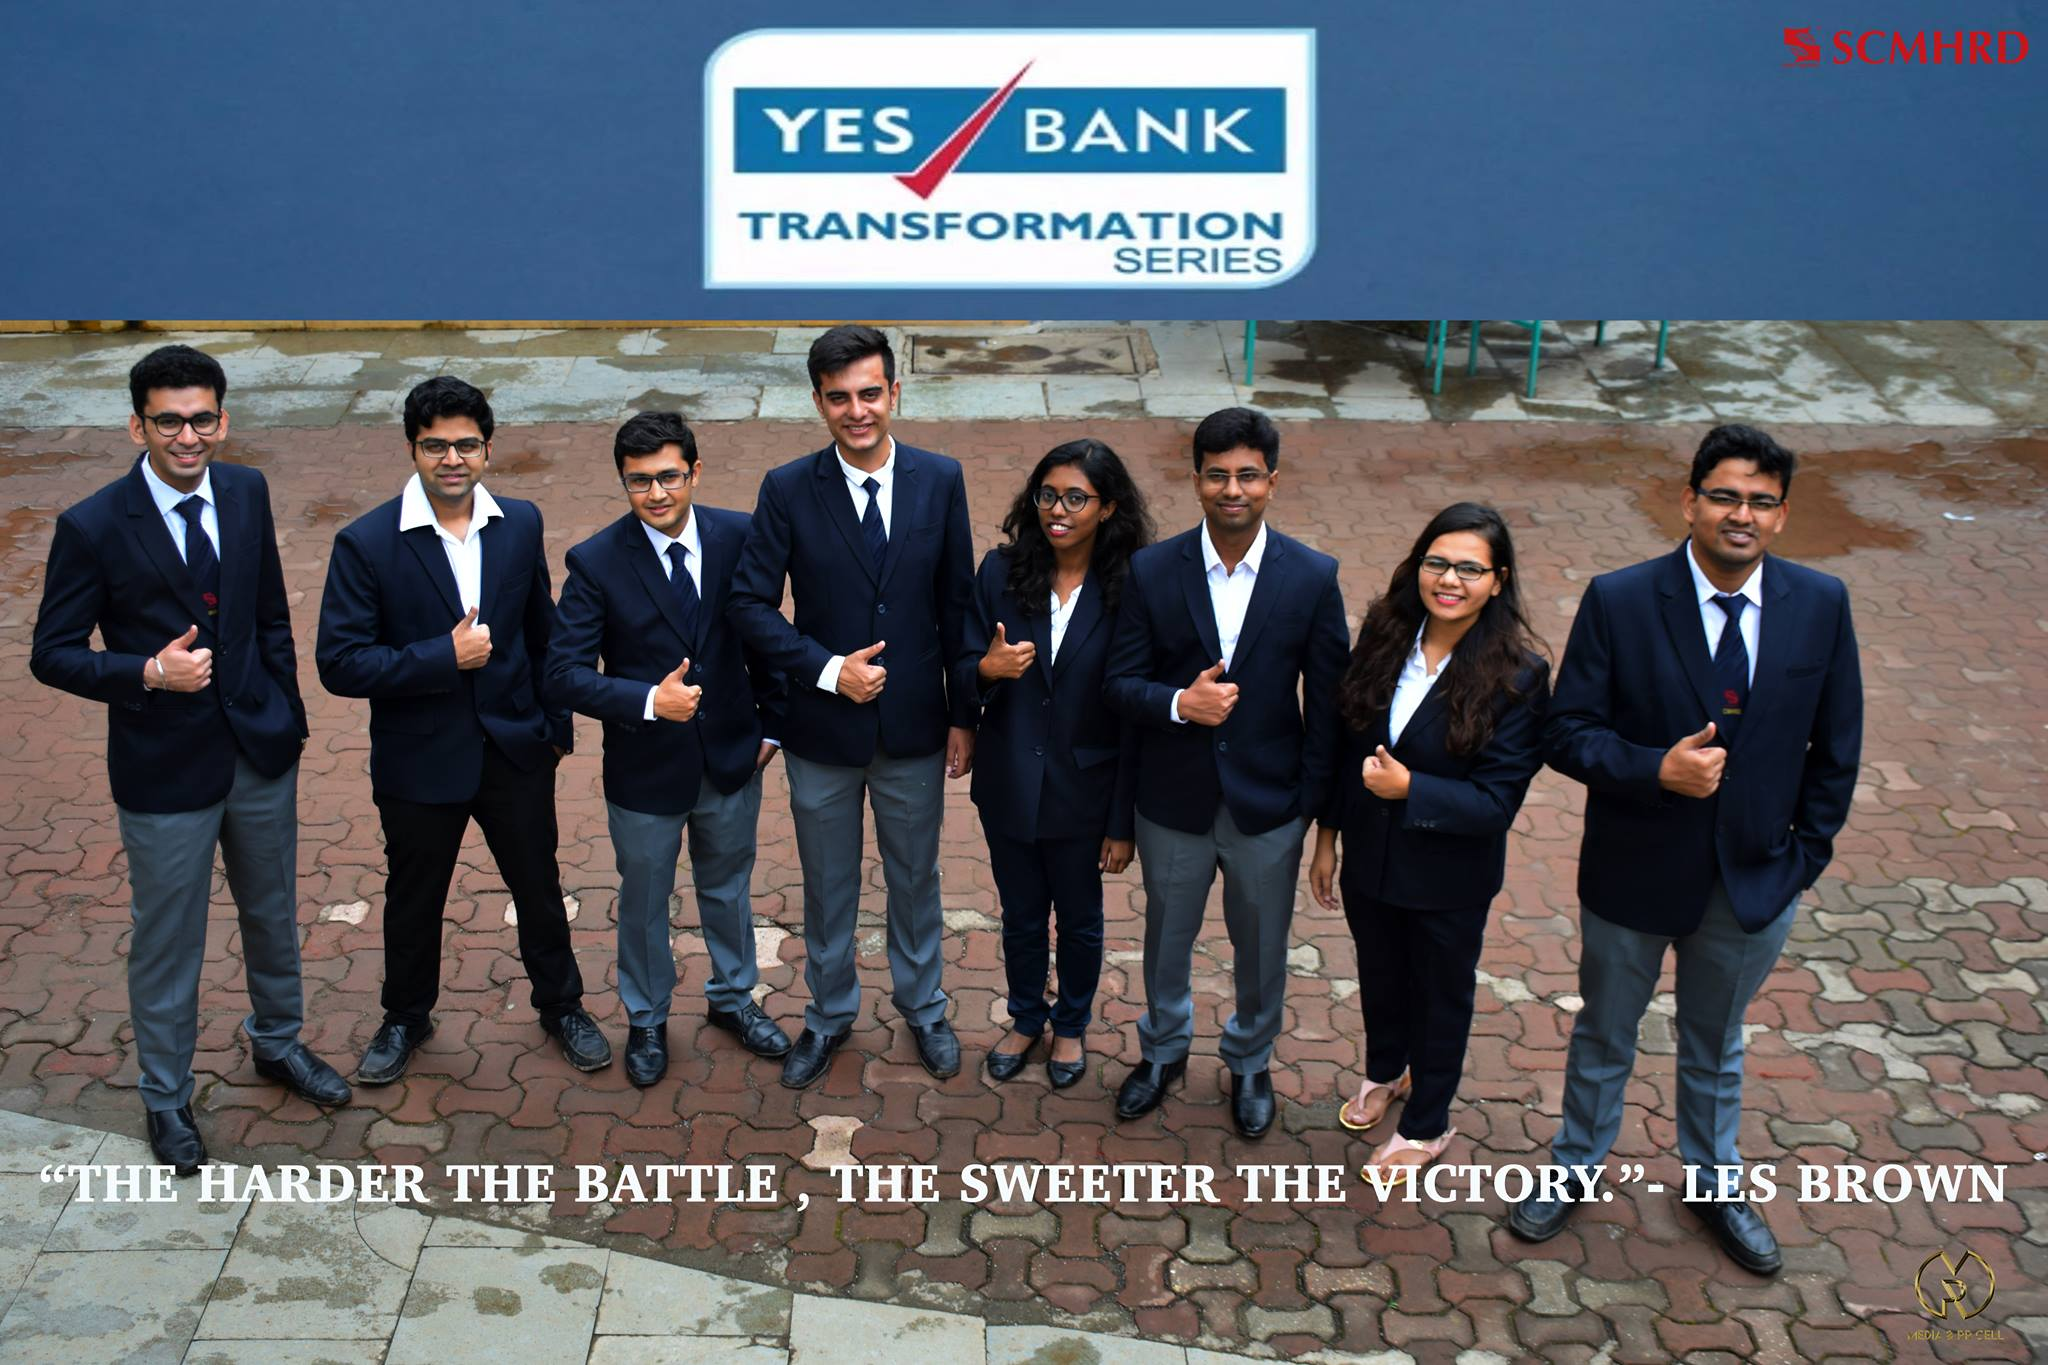 yes bank transformation series